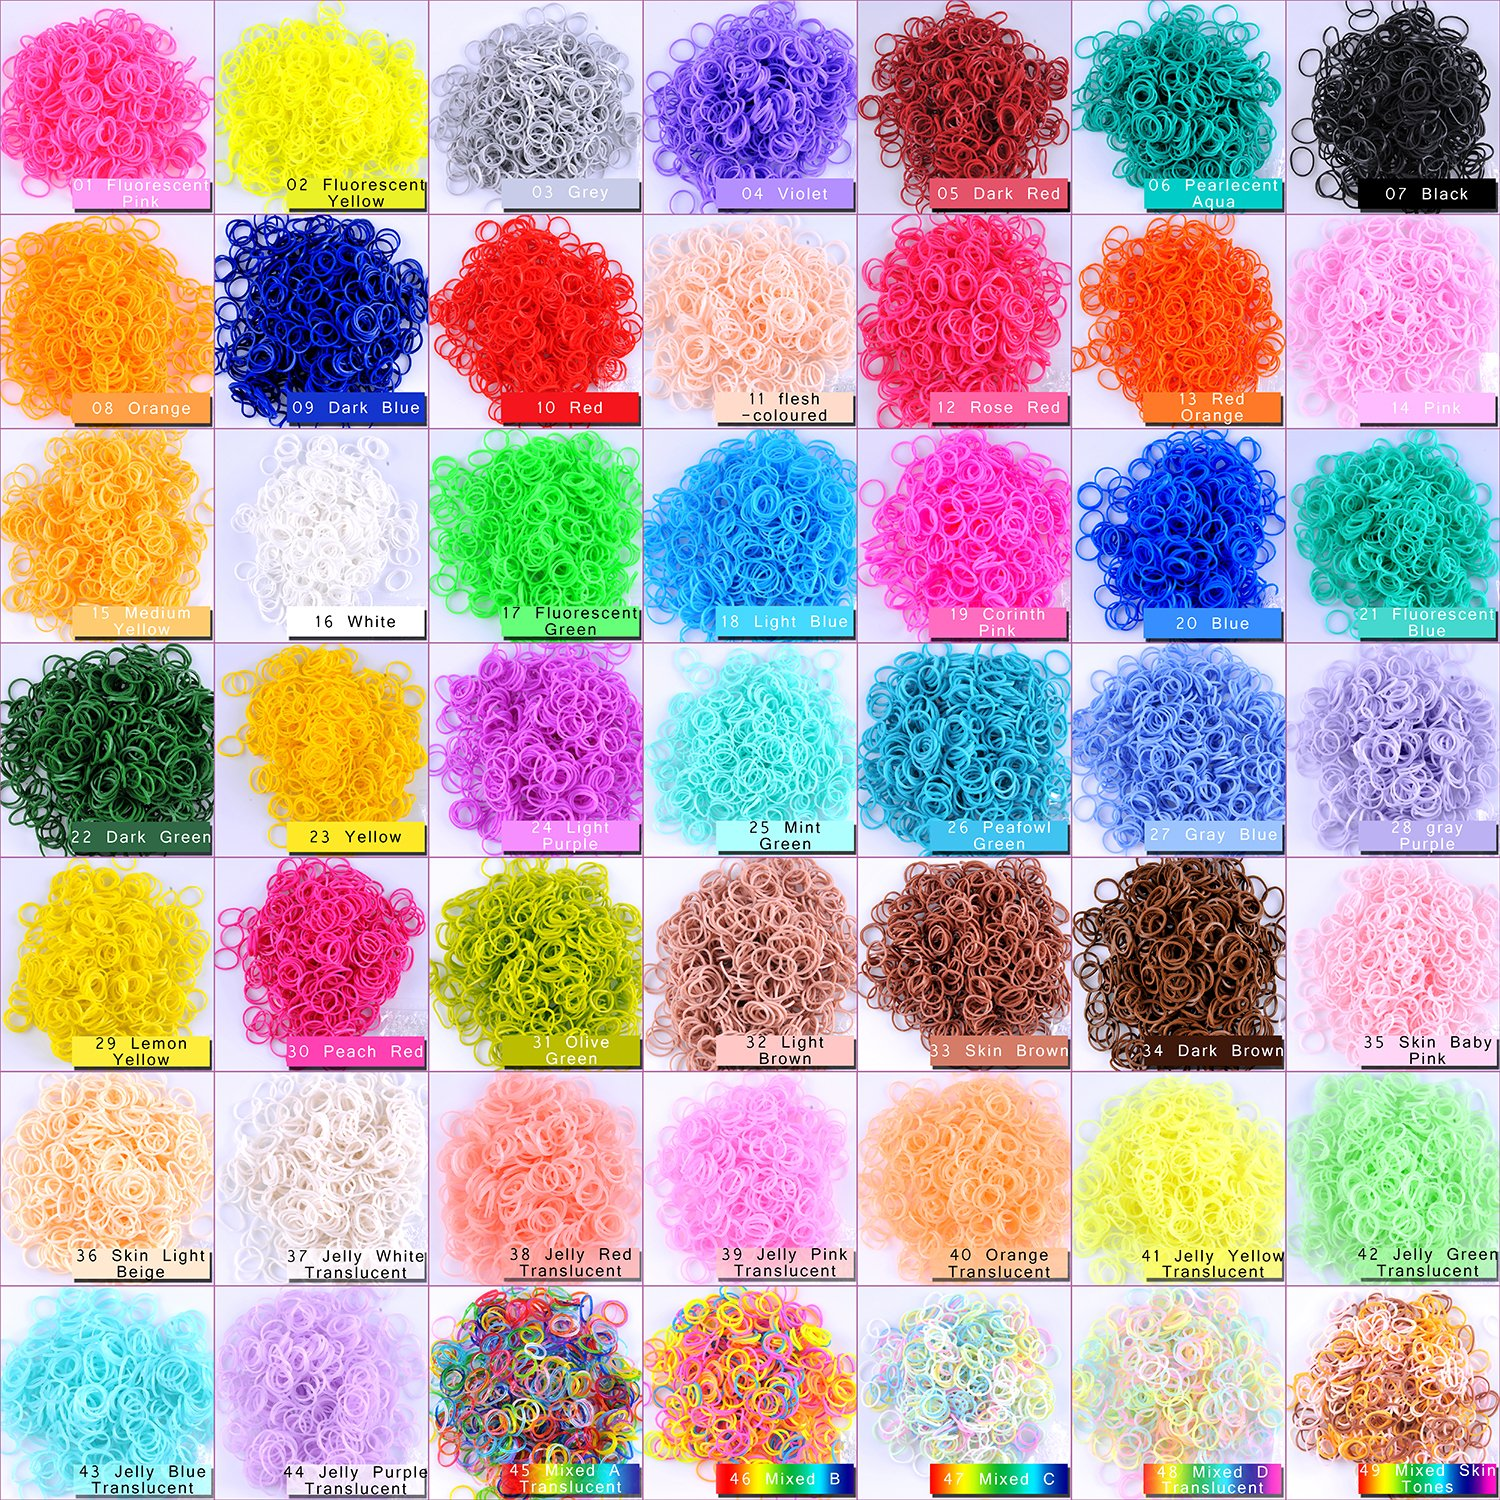 Kirinstores (TM) 1800 PCS 72 Clips Bands Refills for Loom Rainbow Bracelet Dress Making (600 Each of 3 Assorted Color) BT0006x03